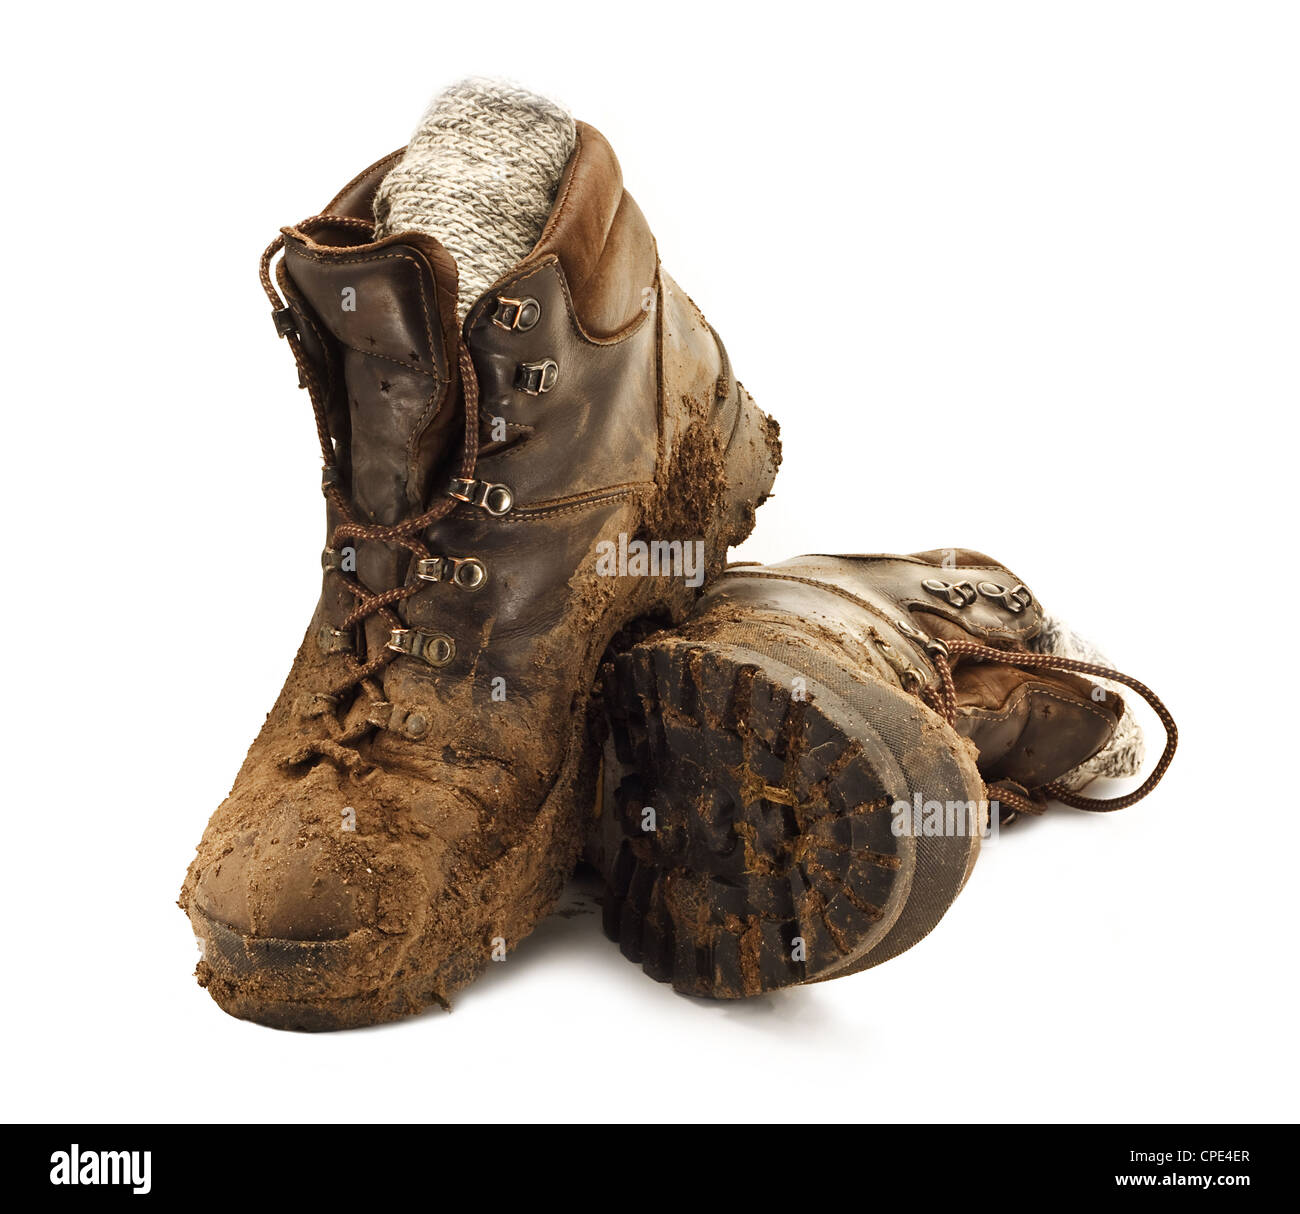 Pair of dirty brown walking boots caked in mud isolated on a white backgound - Stock Image